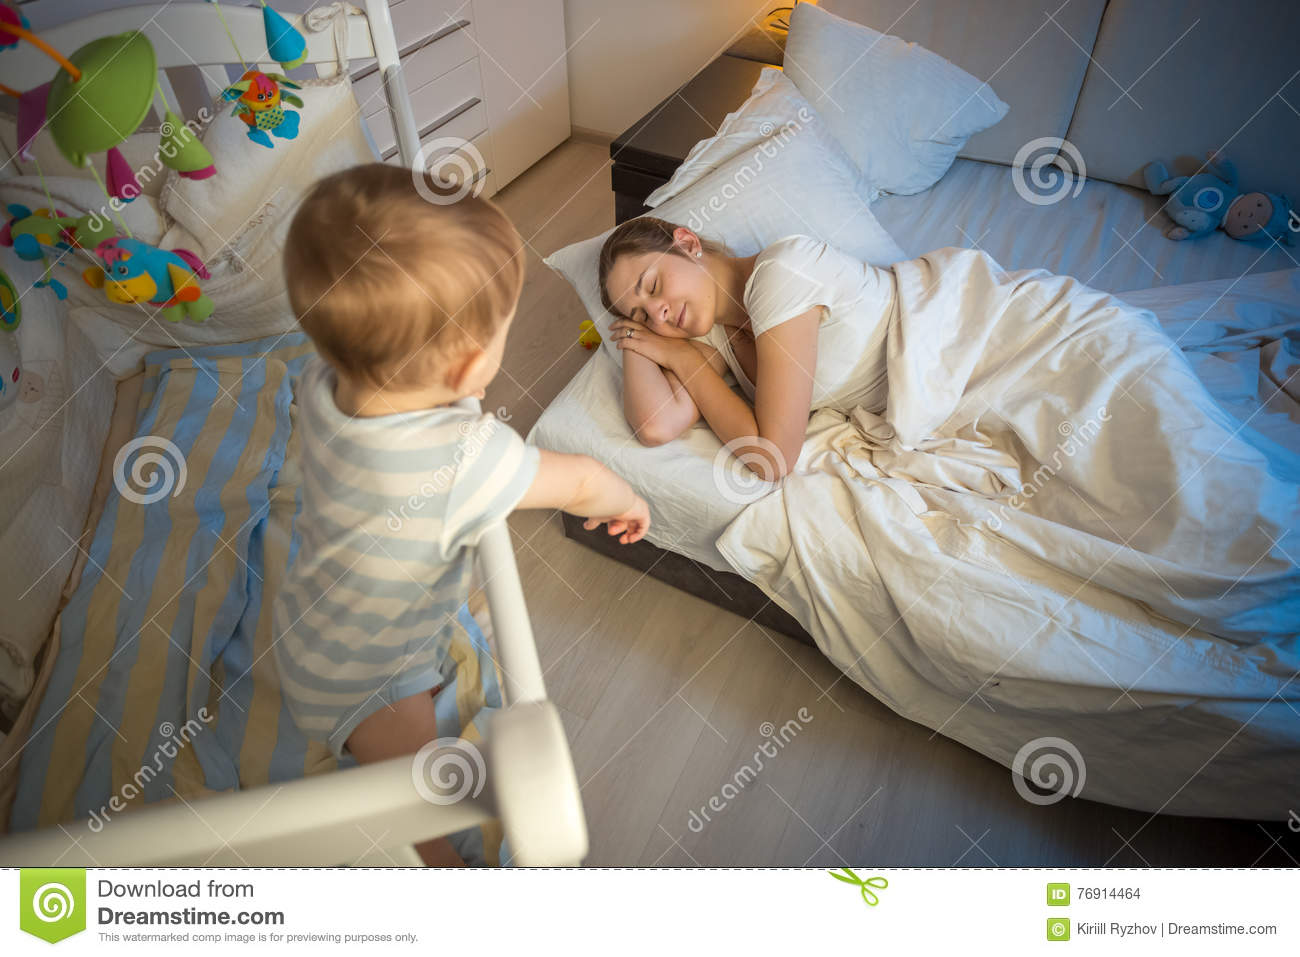 Baby in crib crying and trying to wake up mother that fell asleep